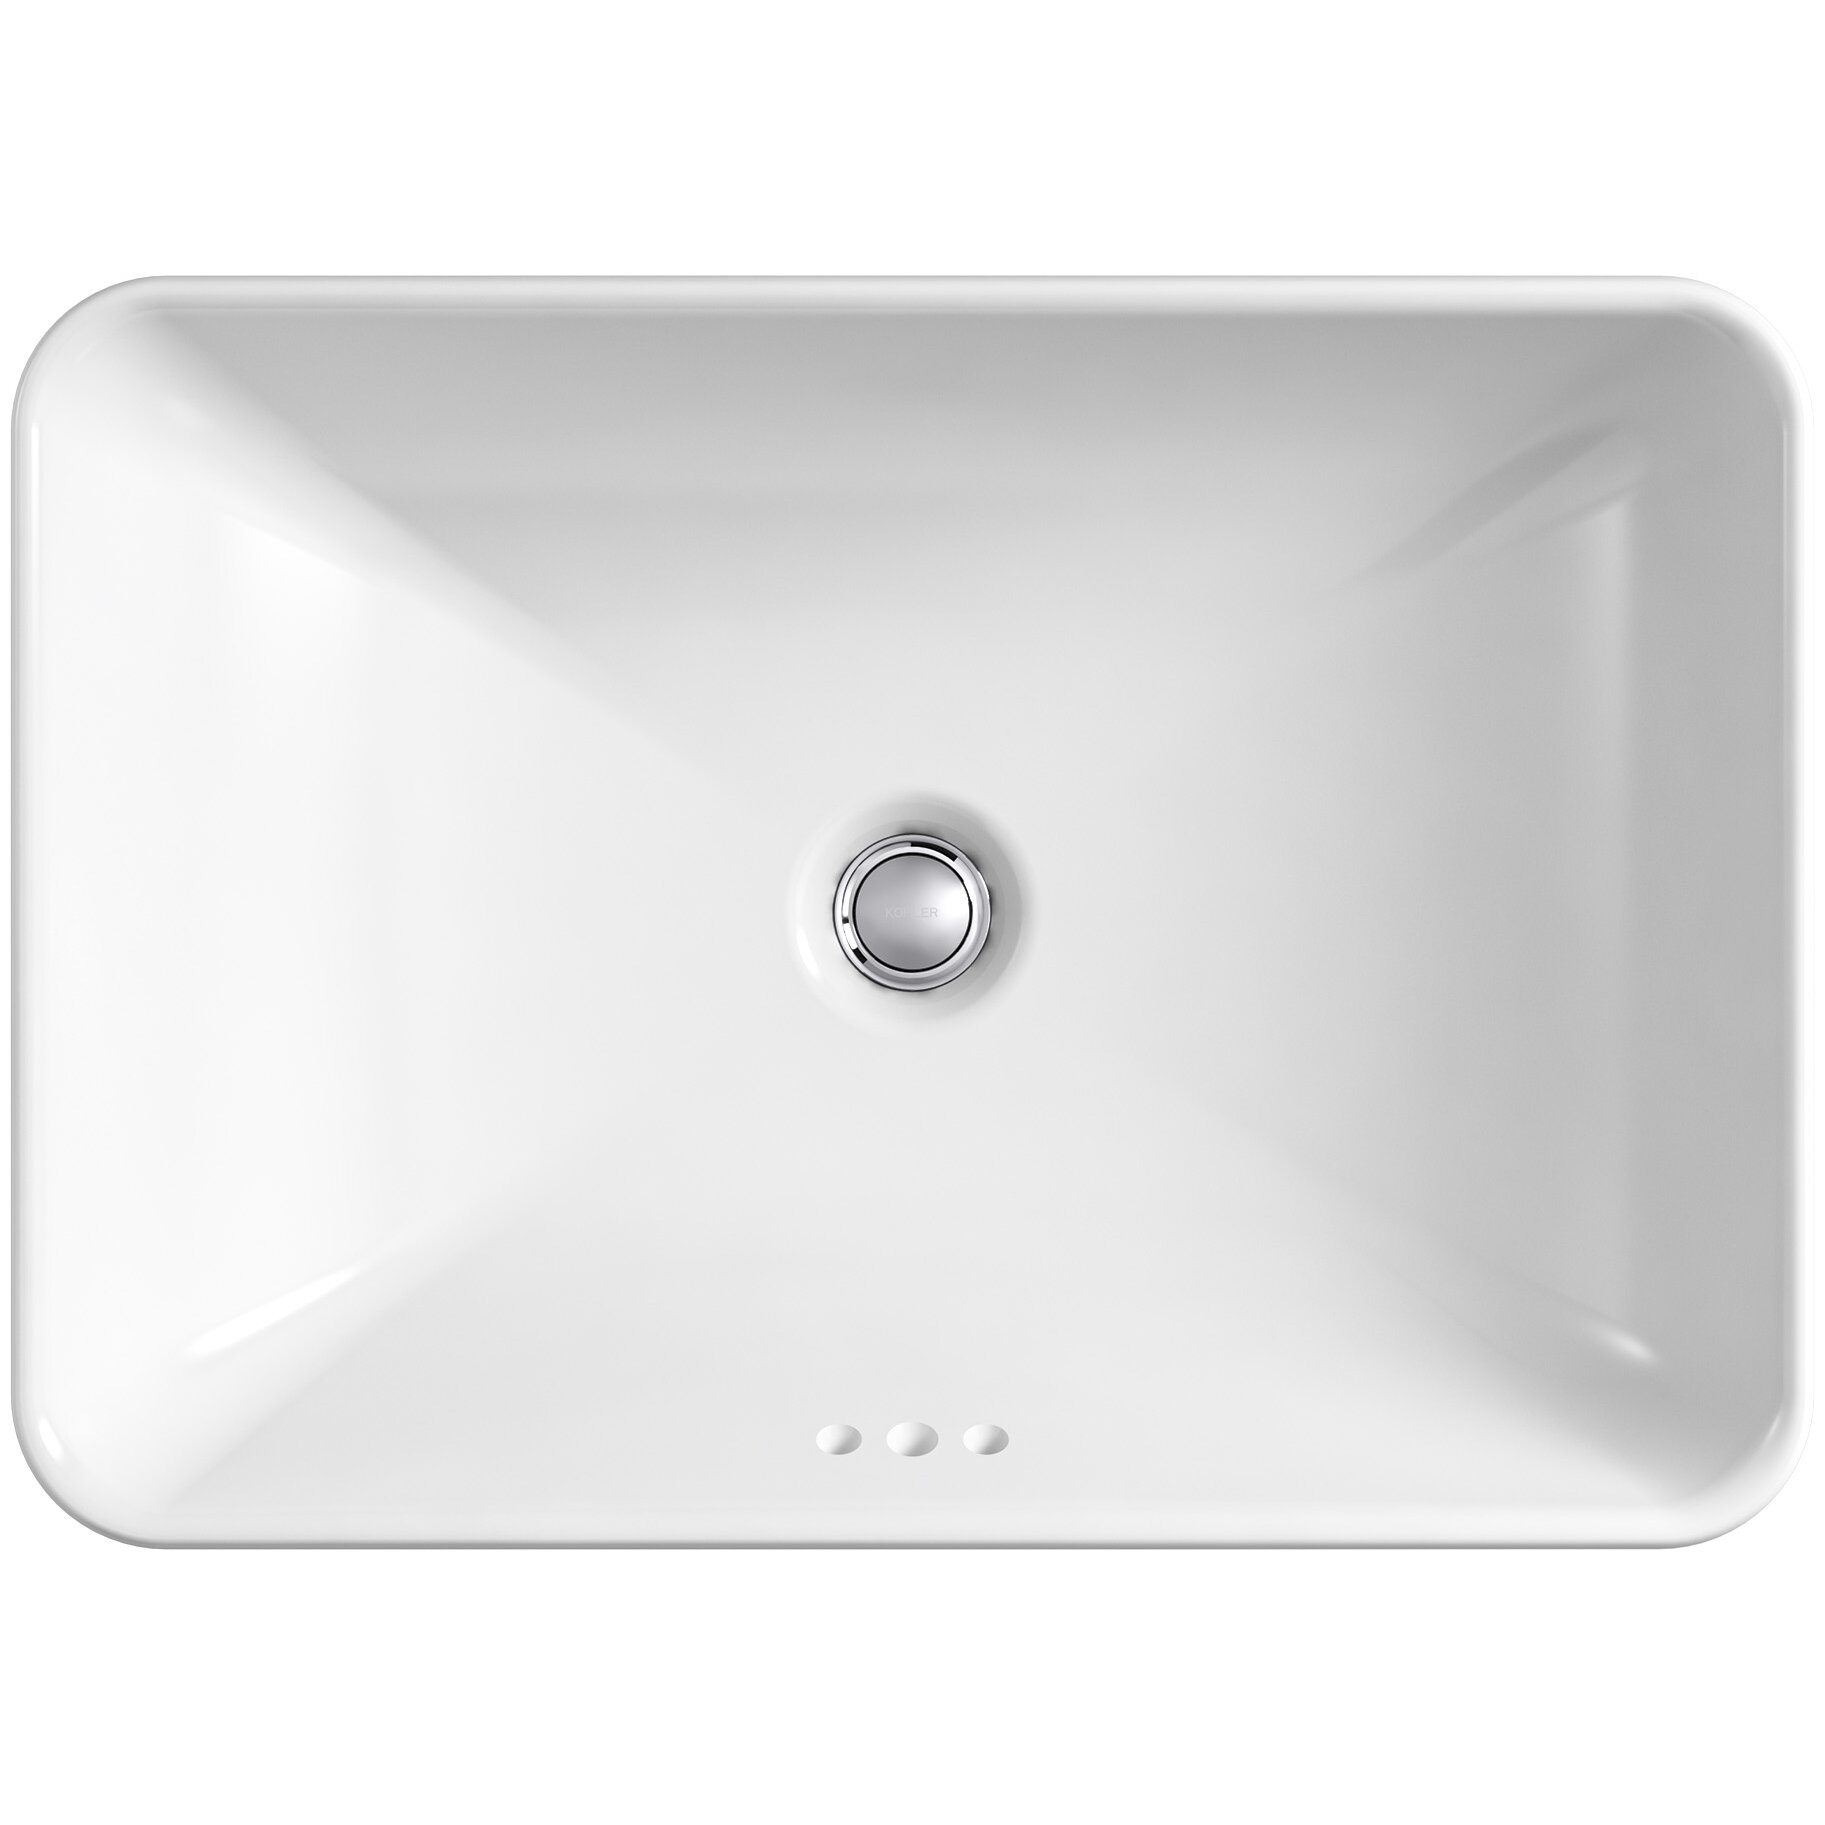 Kohler vox rectangle vessel above counter bathroom sink in white reviews wayfair for Above counter bathroom sinks glass